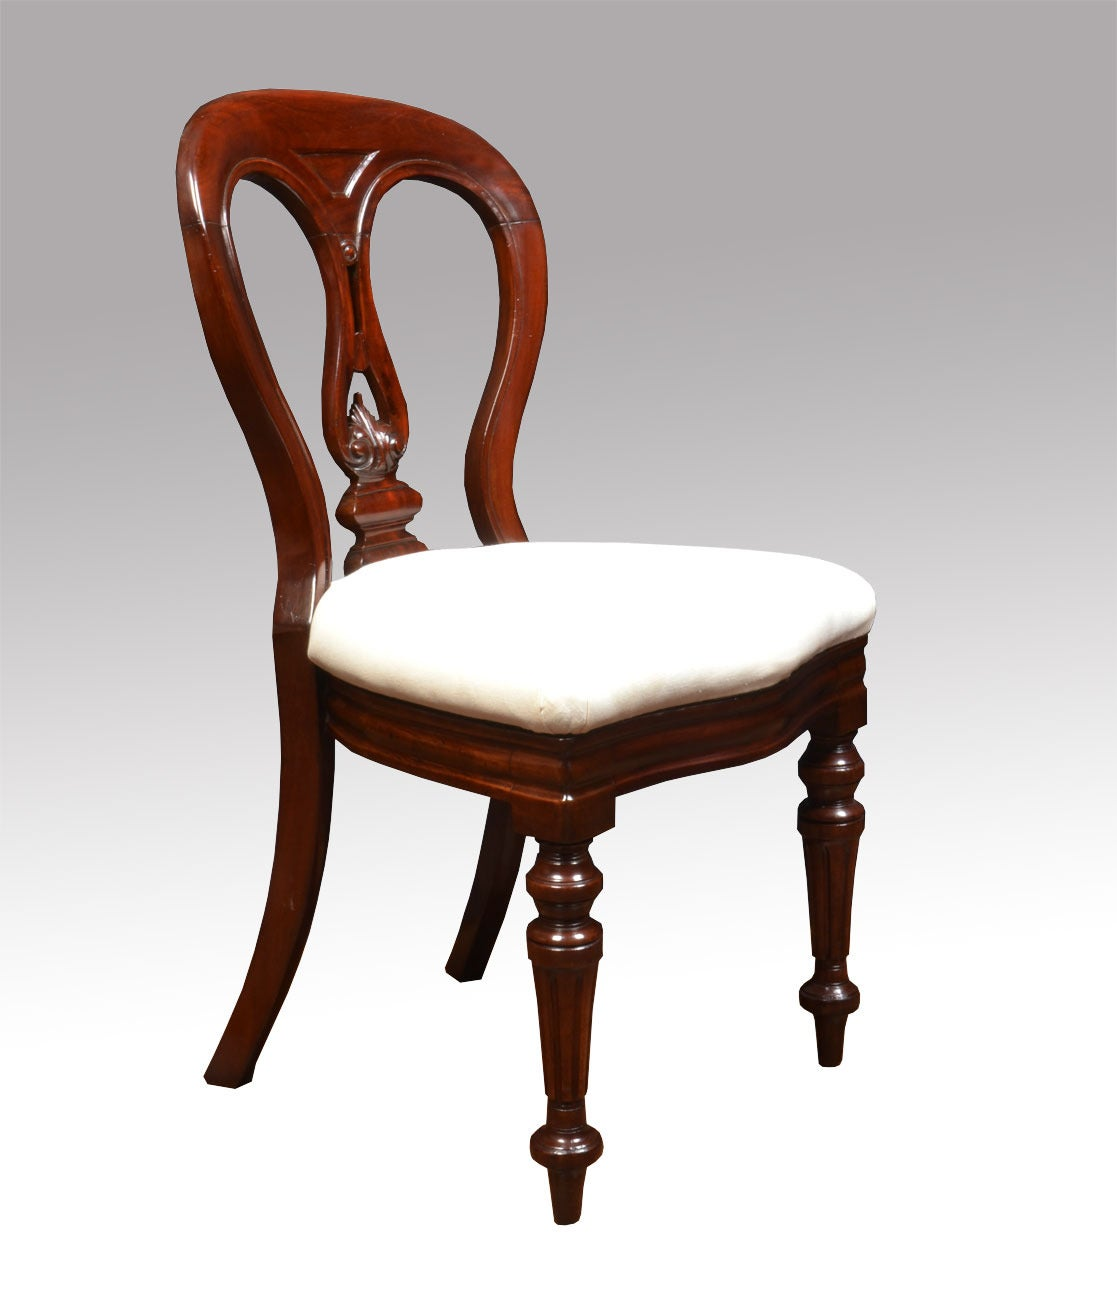 12 Chairs Set Of 12 Mahogany Victorian Dining Chairs For Sale At 1stdibs